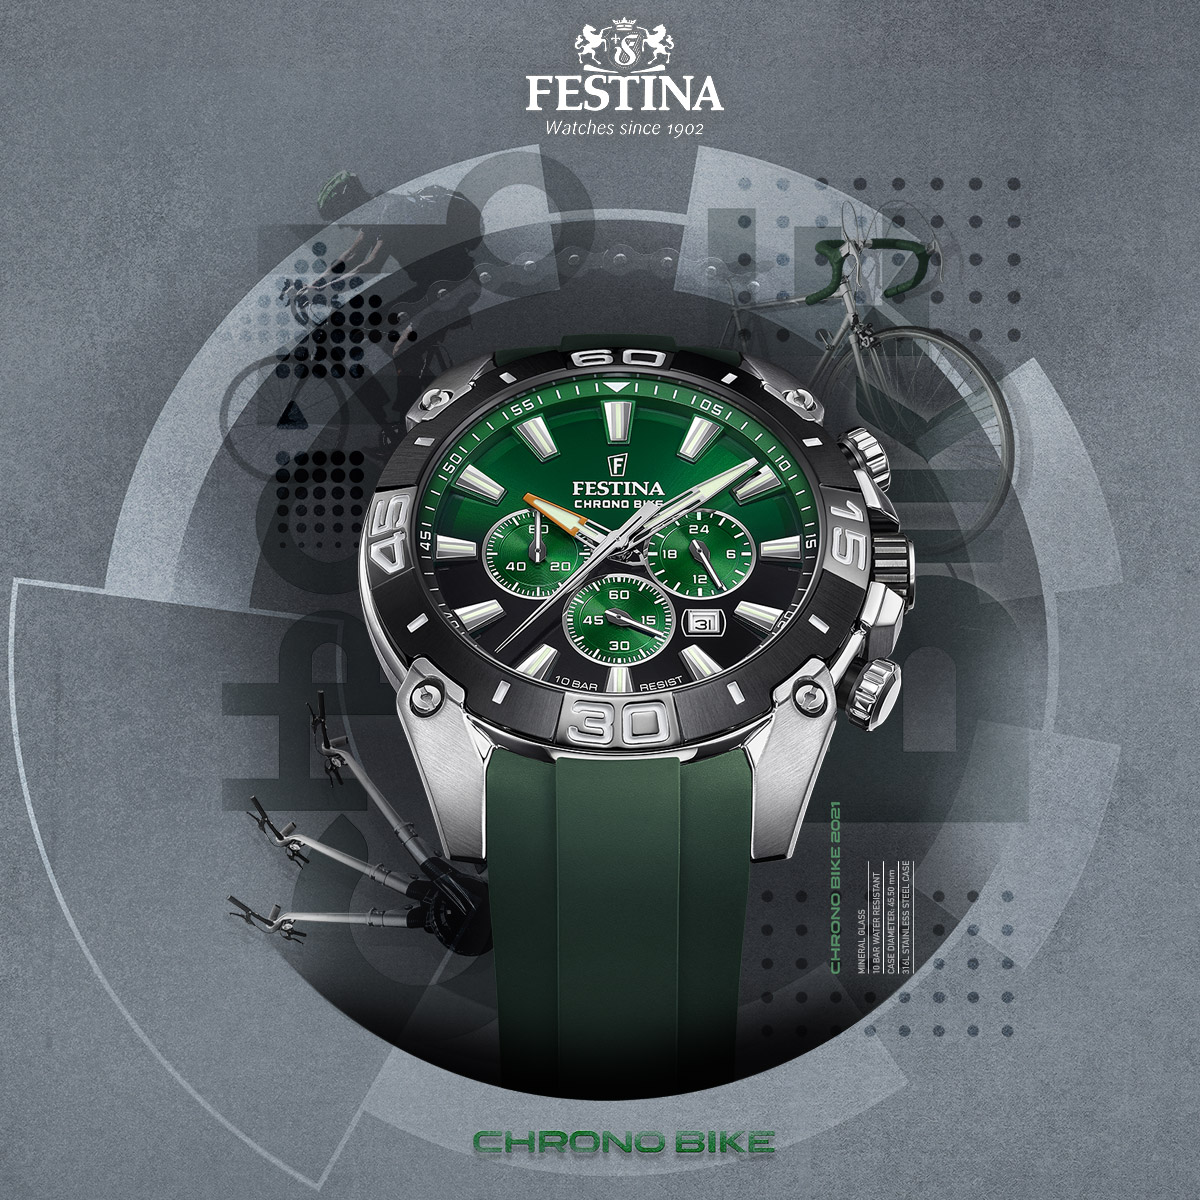 Festina Chrono Bike_2021